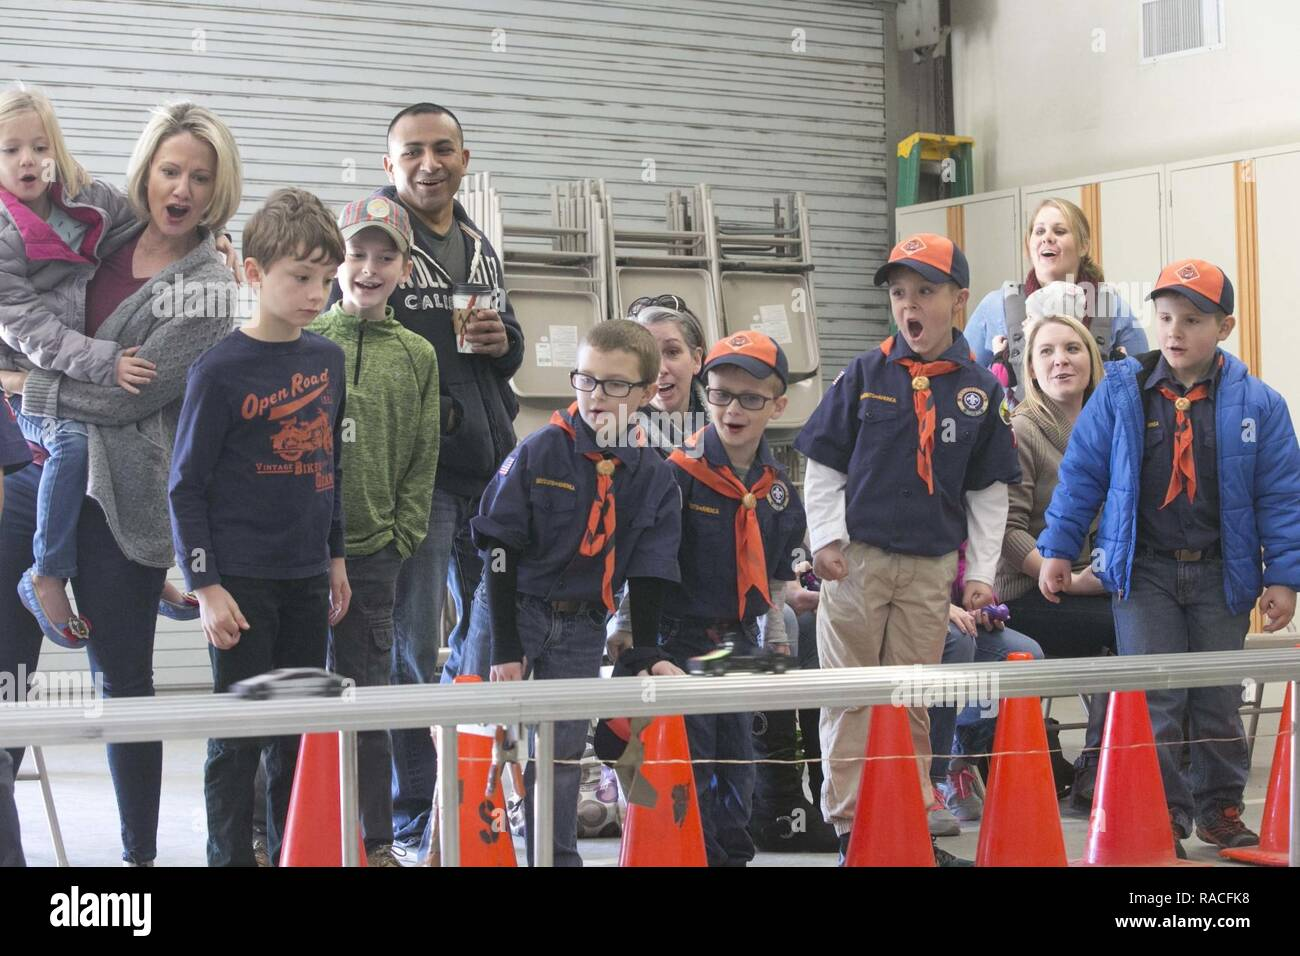 Race Cars Finish Line Stock Photos Pinewood Derby Lamps Children With Cub Scout Pack 78 Cheer As Their Pass The During